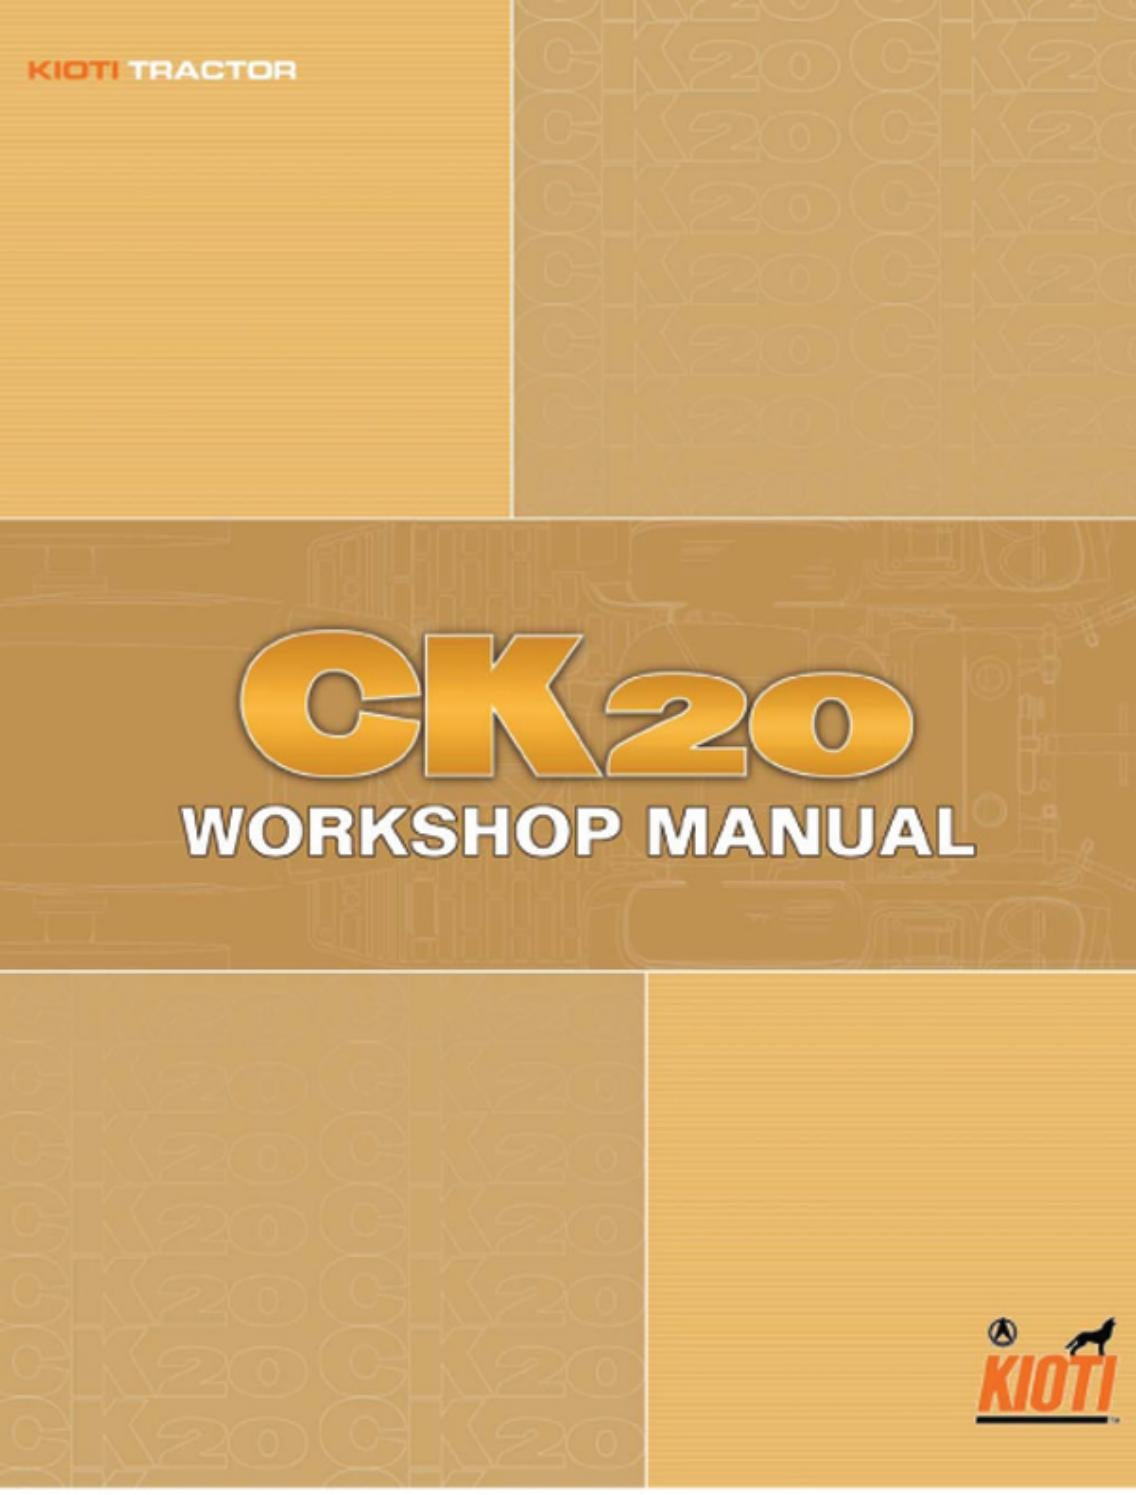 Kioti Daedong Ck20 Tractor Service Repair Manual By 1635217 Issuu Wiring Diagrams